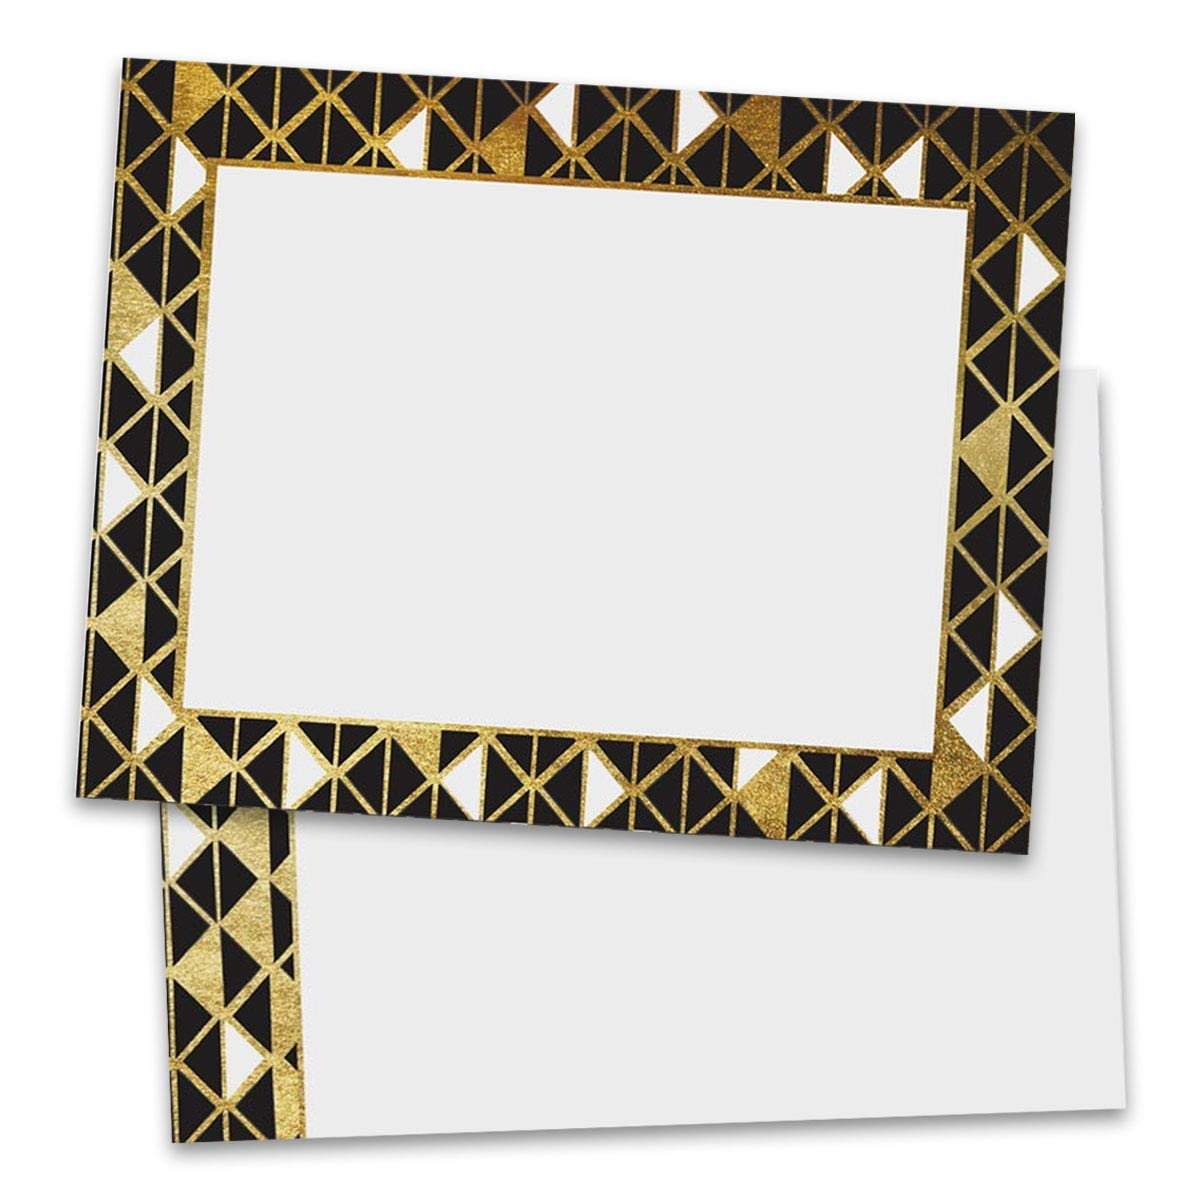 Black and Gold Art Deco Postcards, Standard Size, 100 Count by PaperDirect